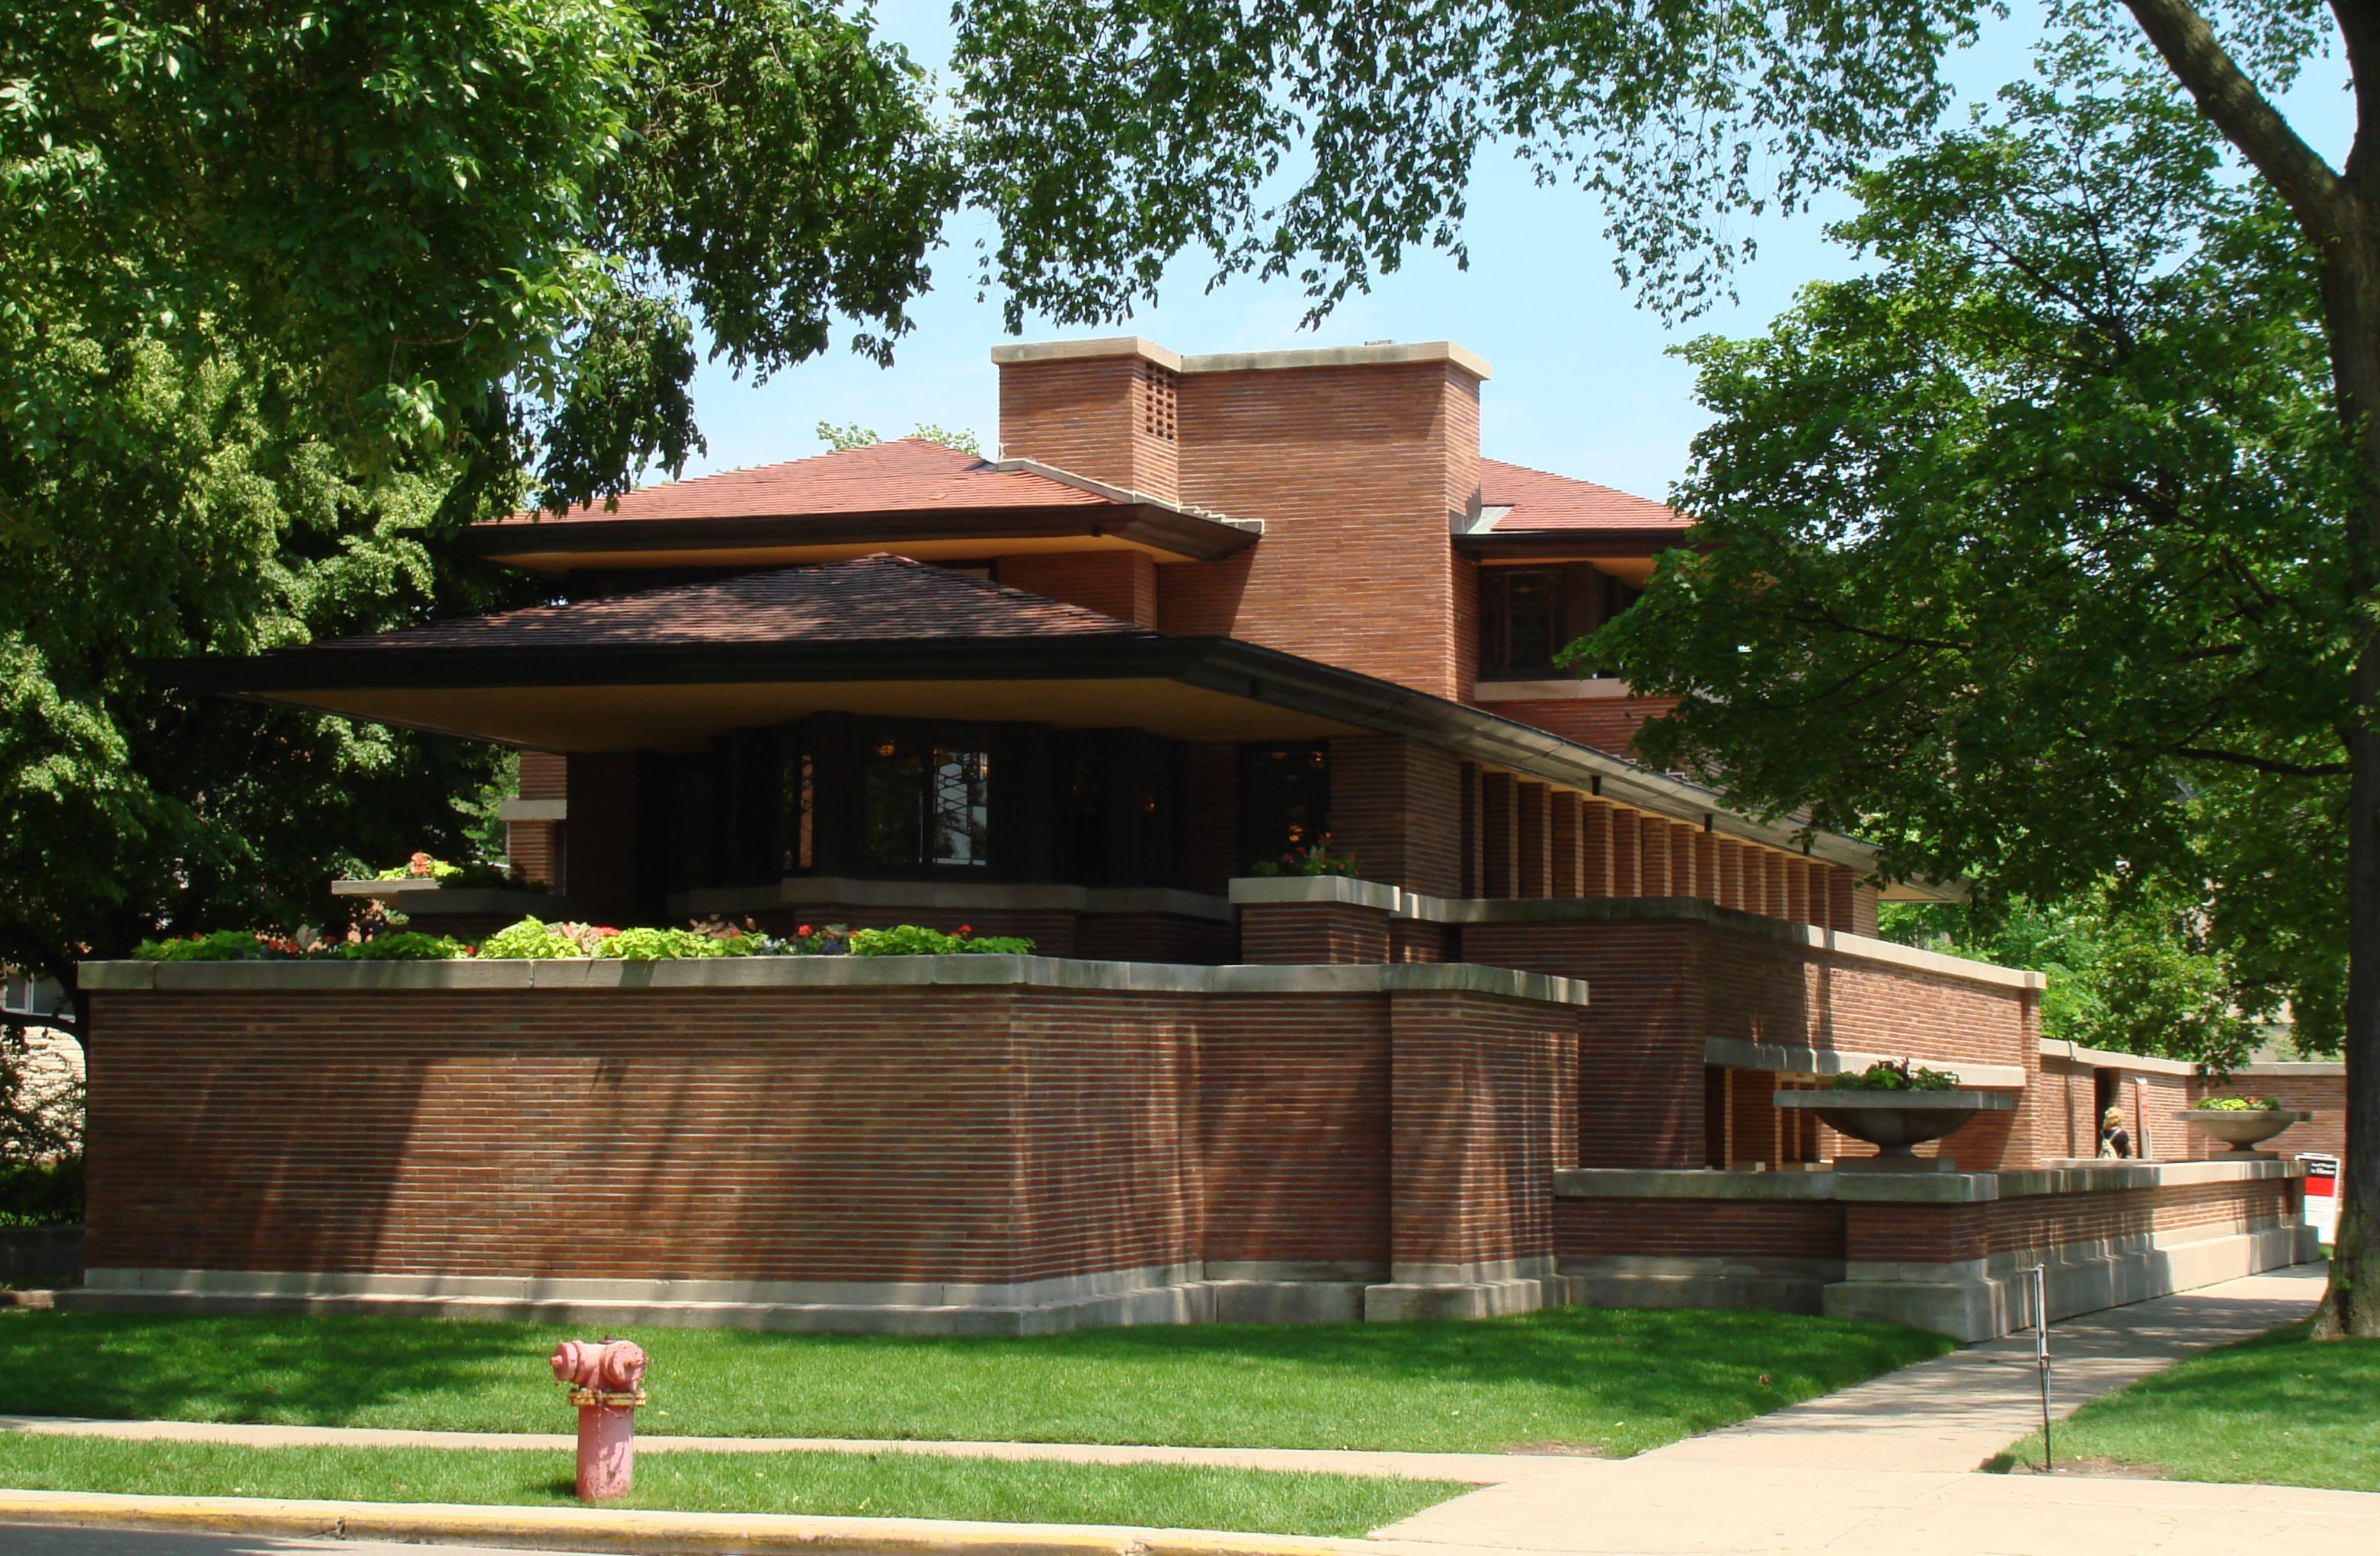 Unique robie house on home design with robie house frank for Frank lloyd wright stile prateria